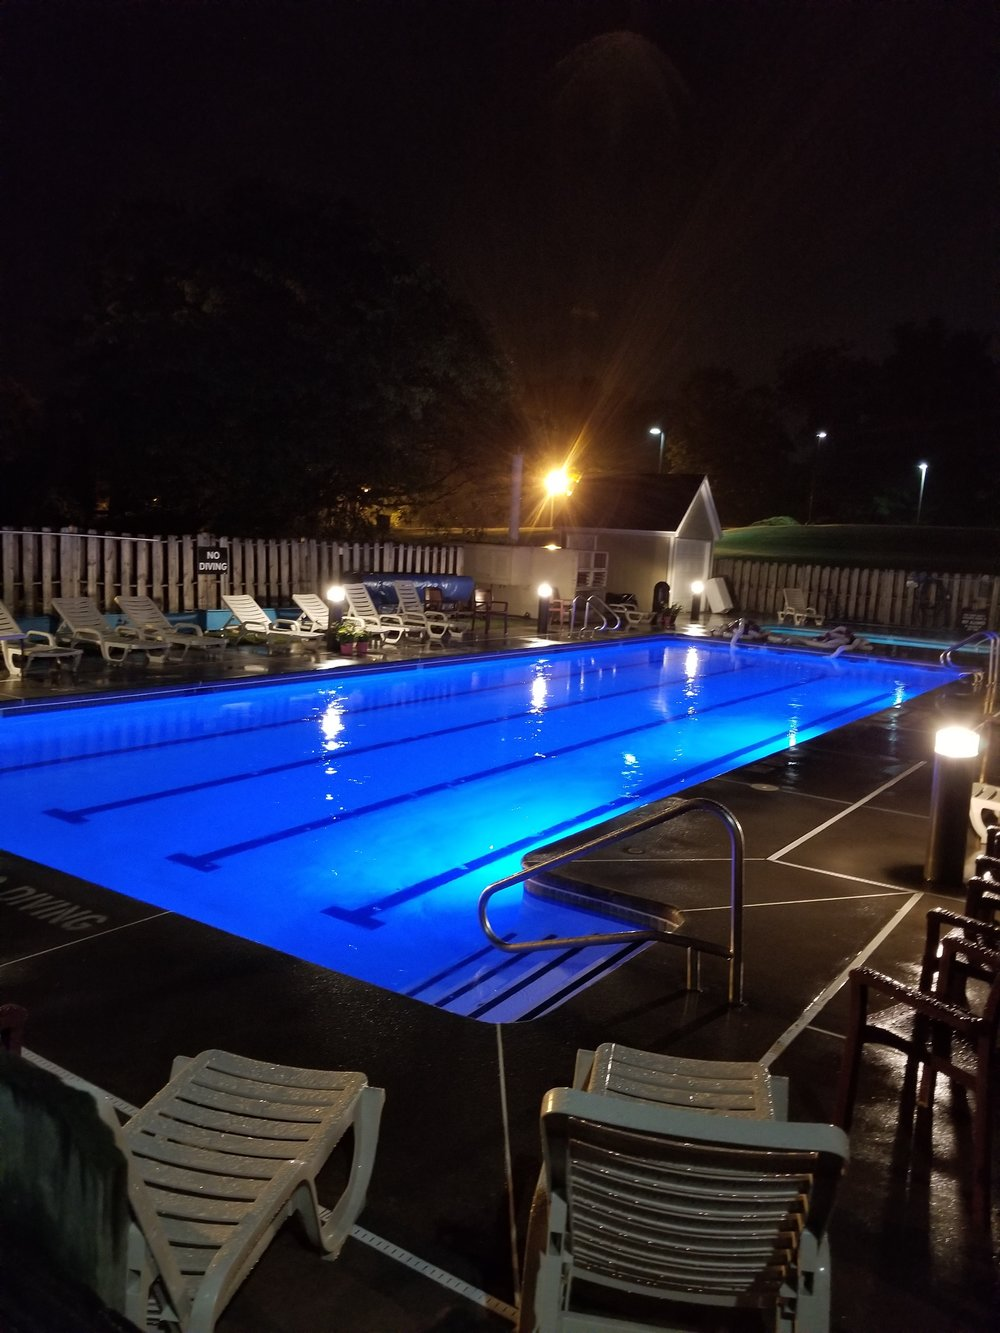 NE POOL NIGHT 06.2018.jpg